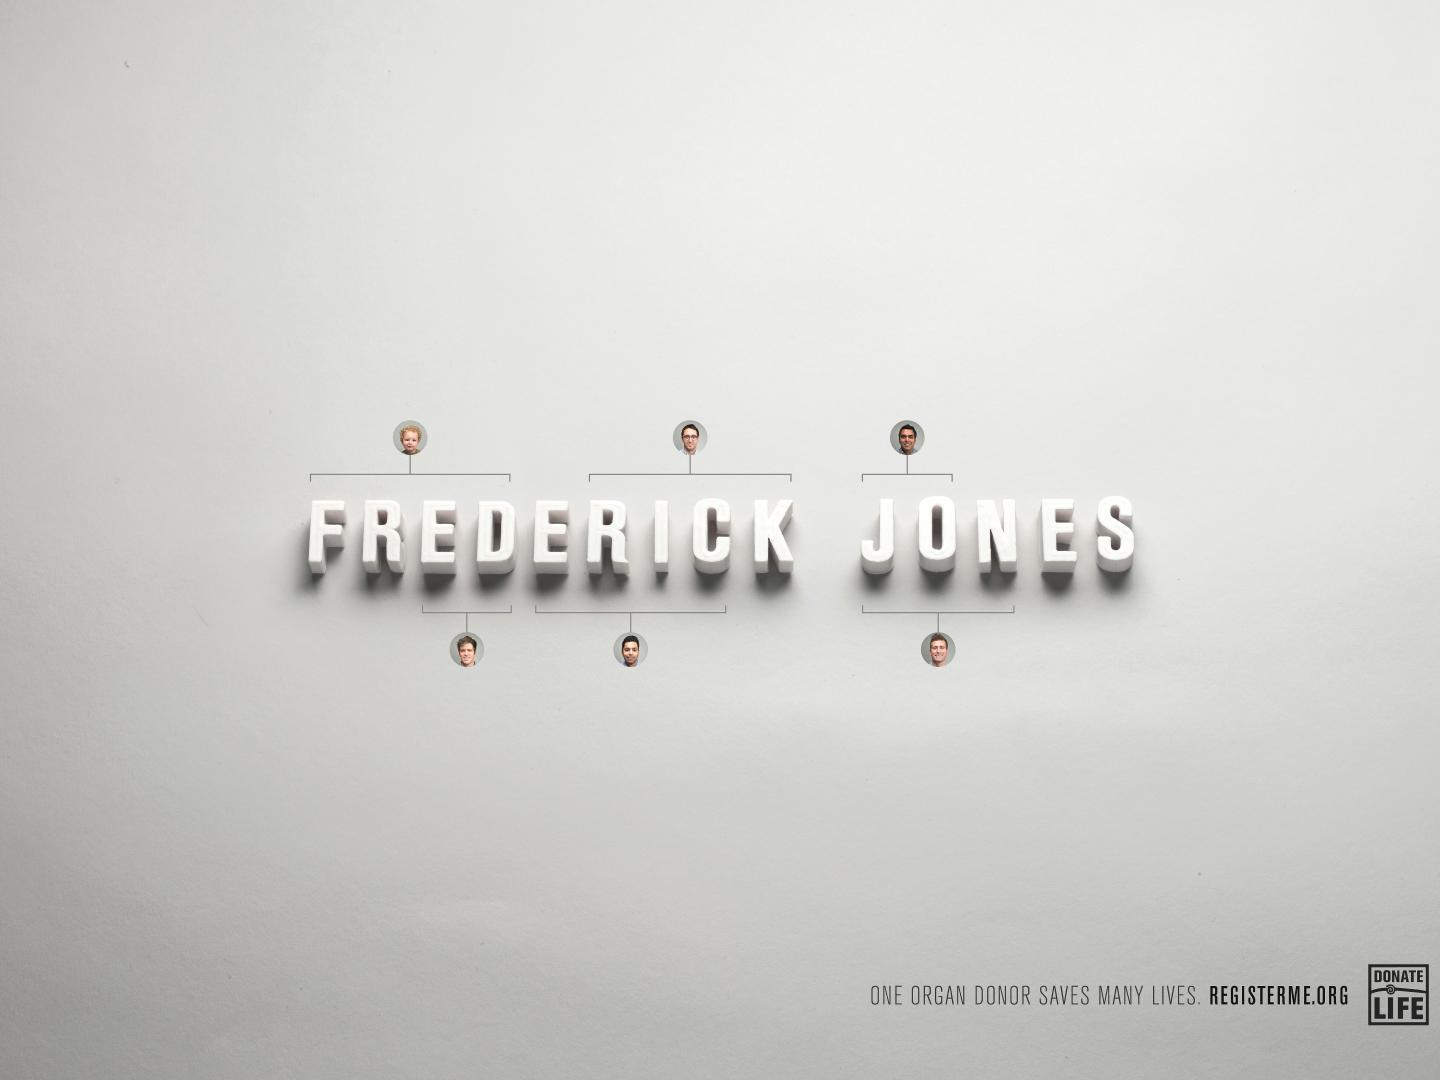 Frederick Jones Thumbnail